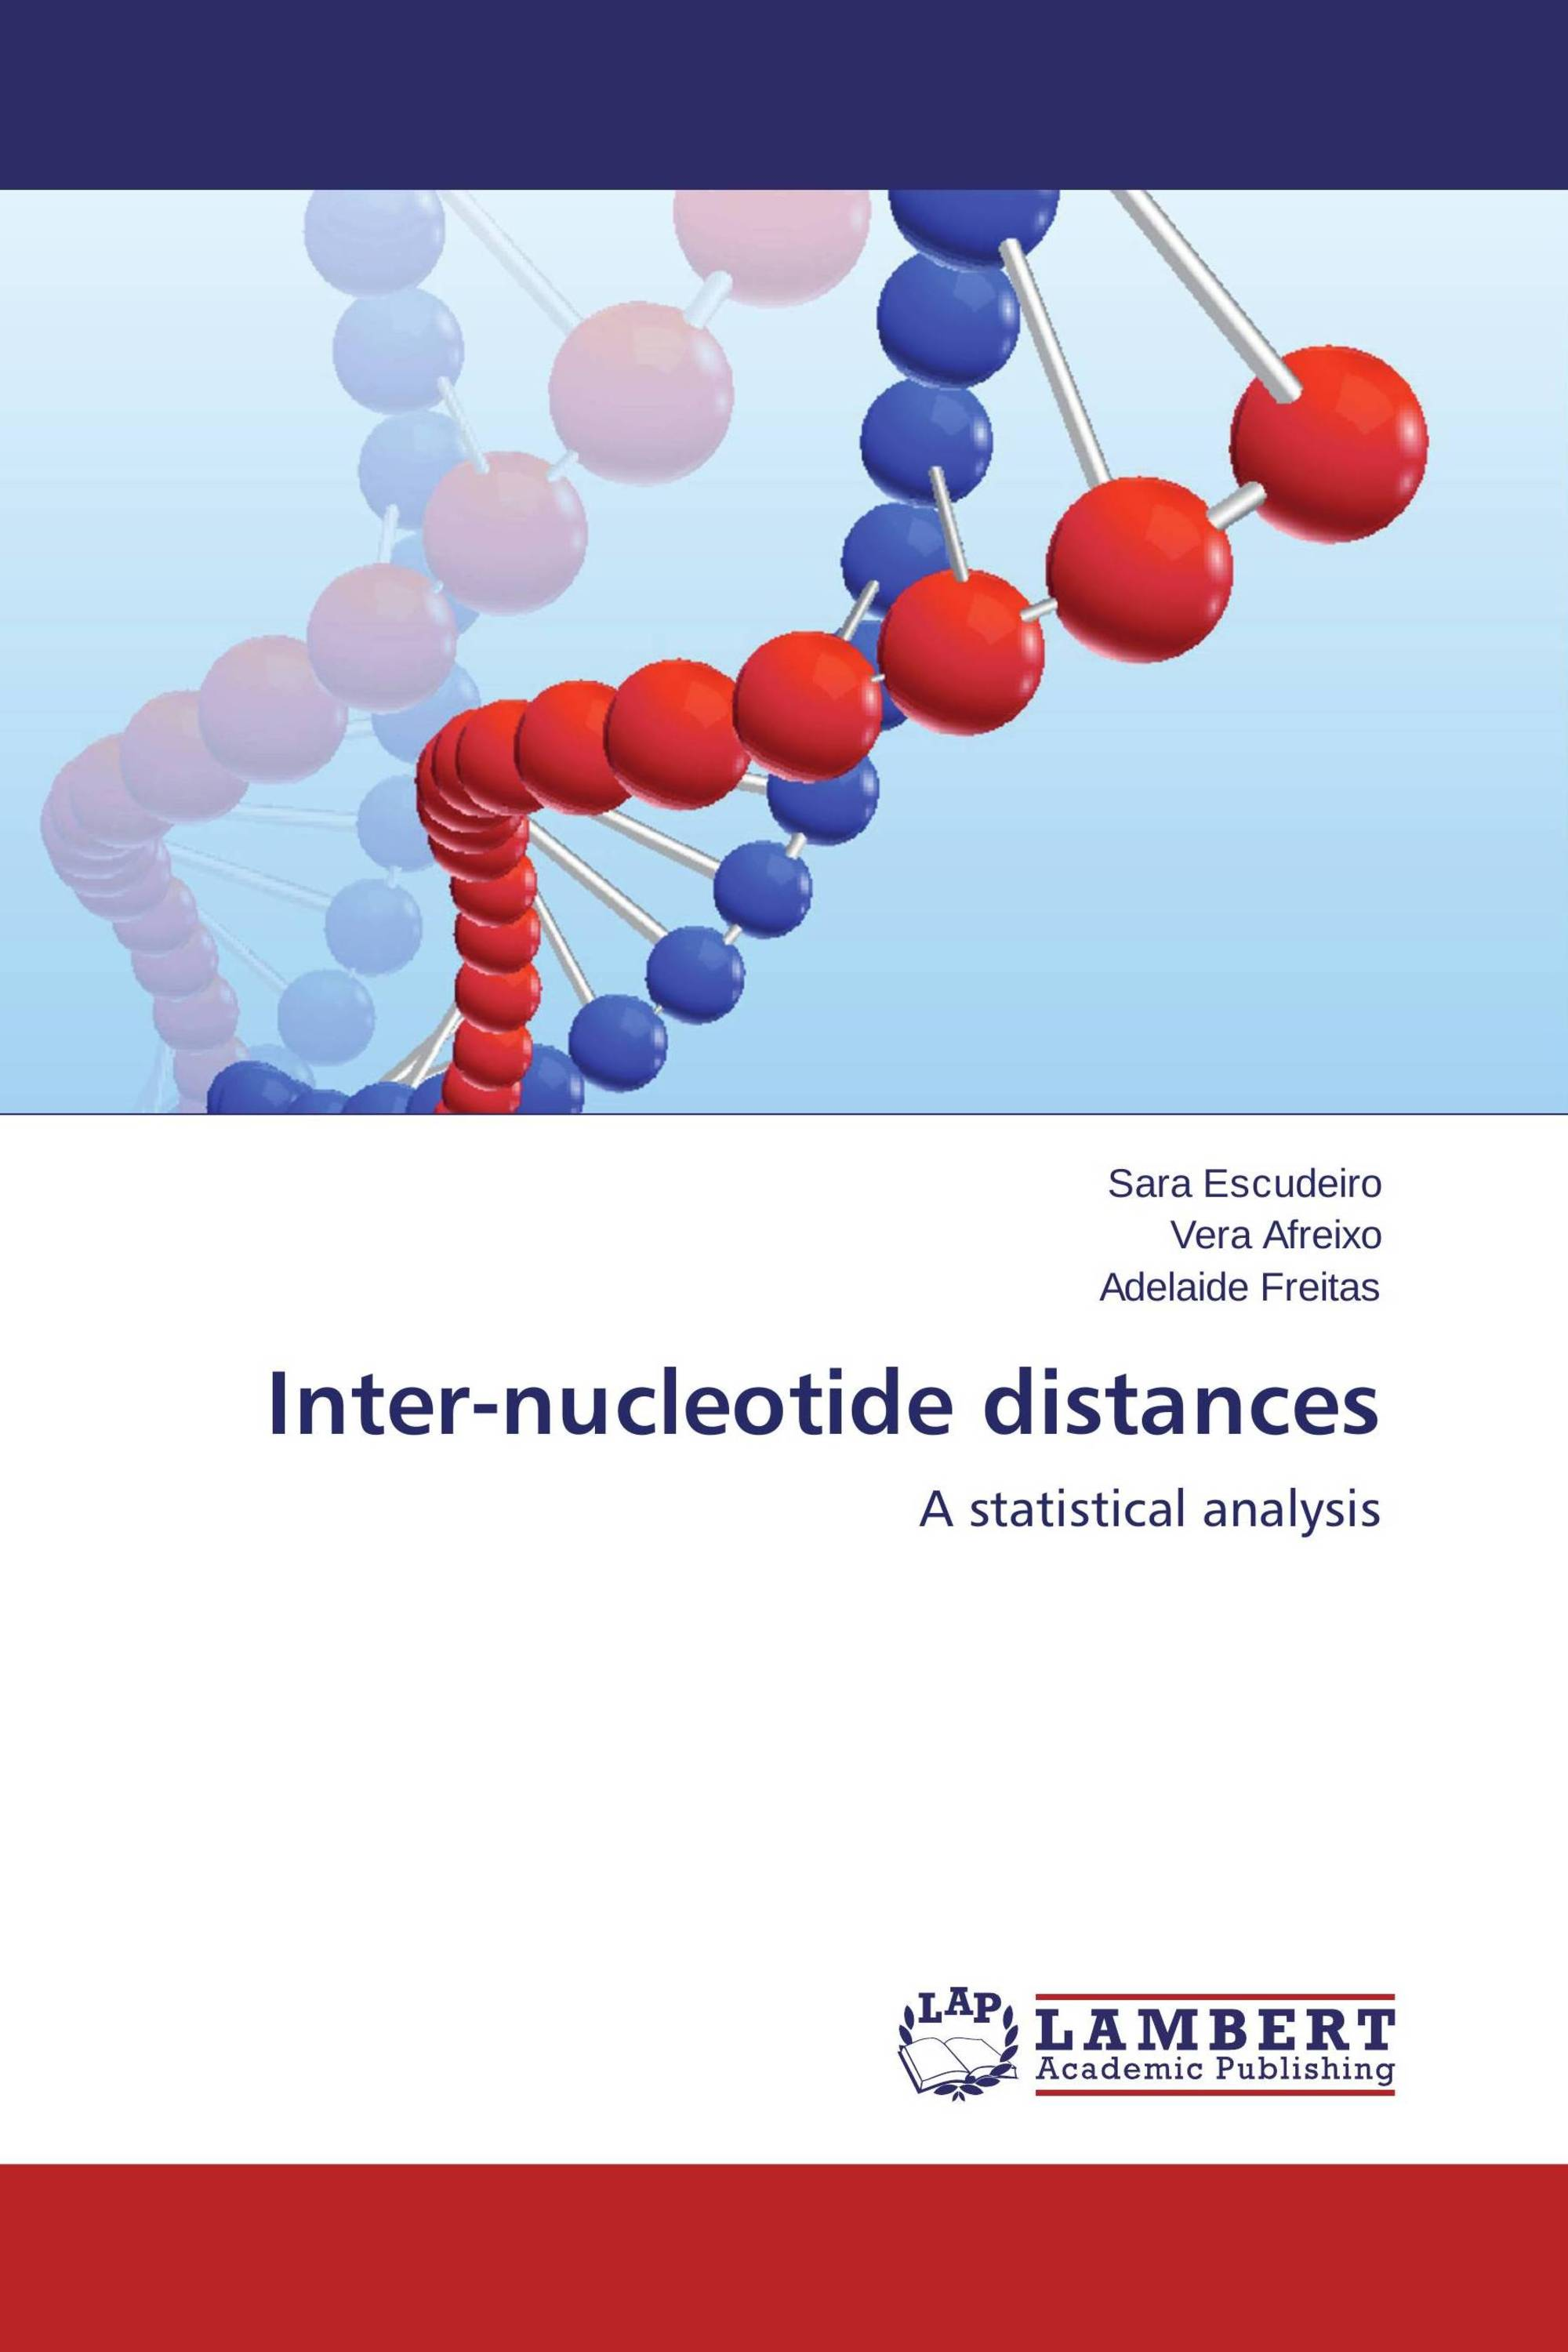 Inter-nucleotide distances